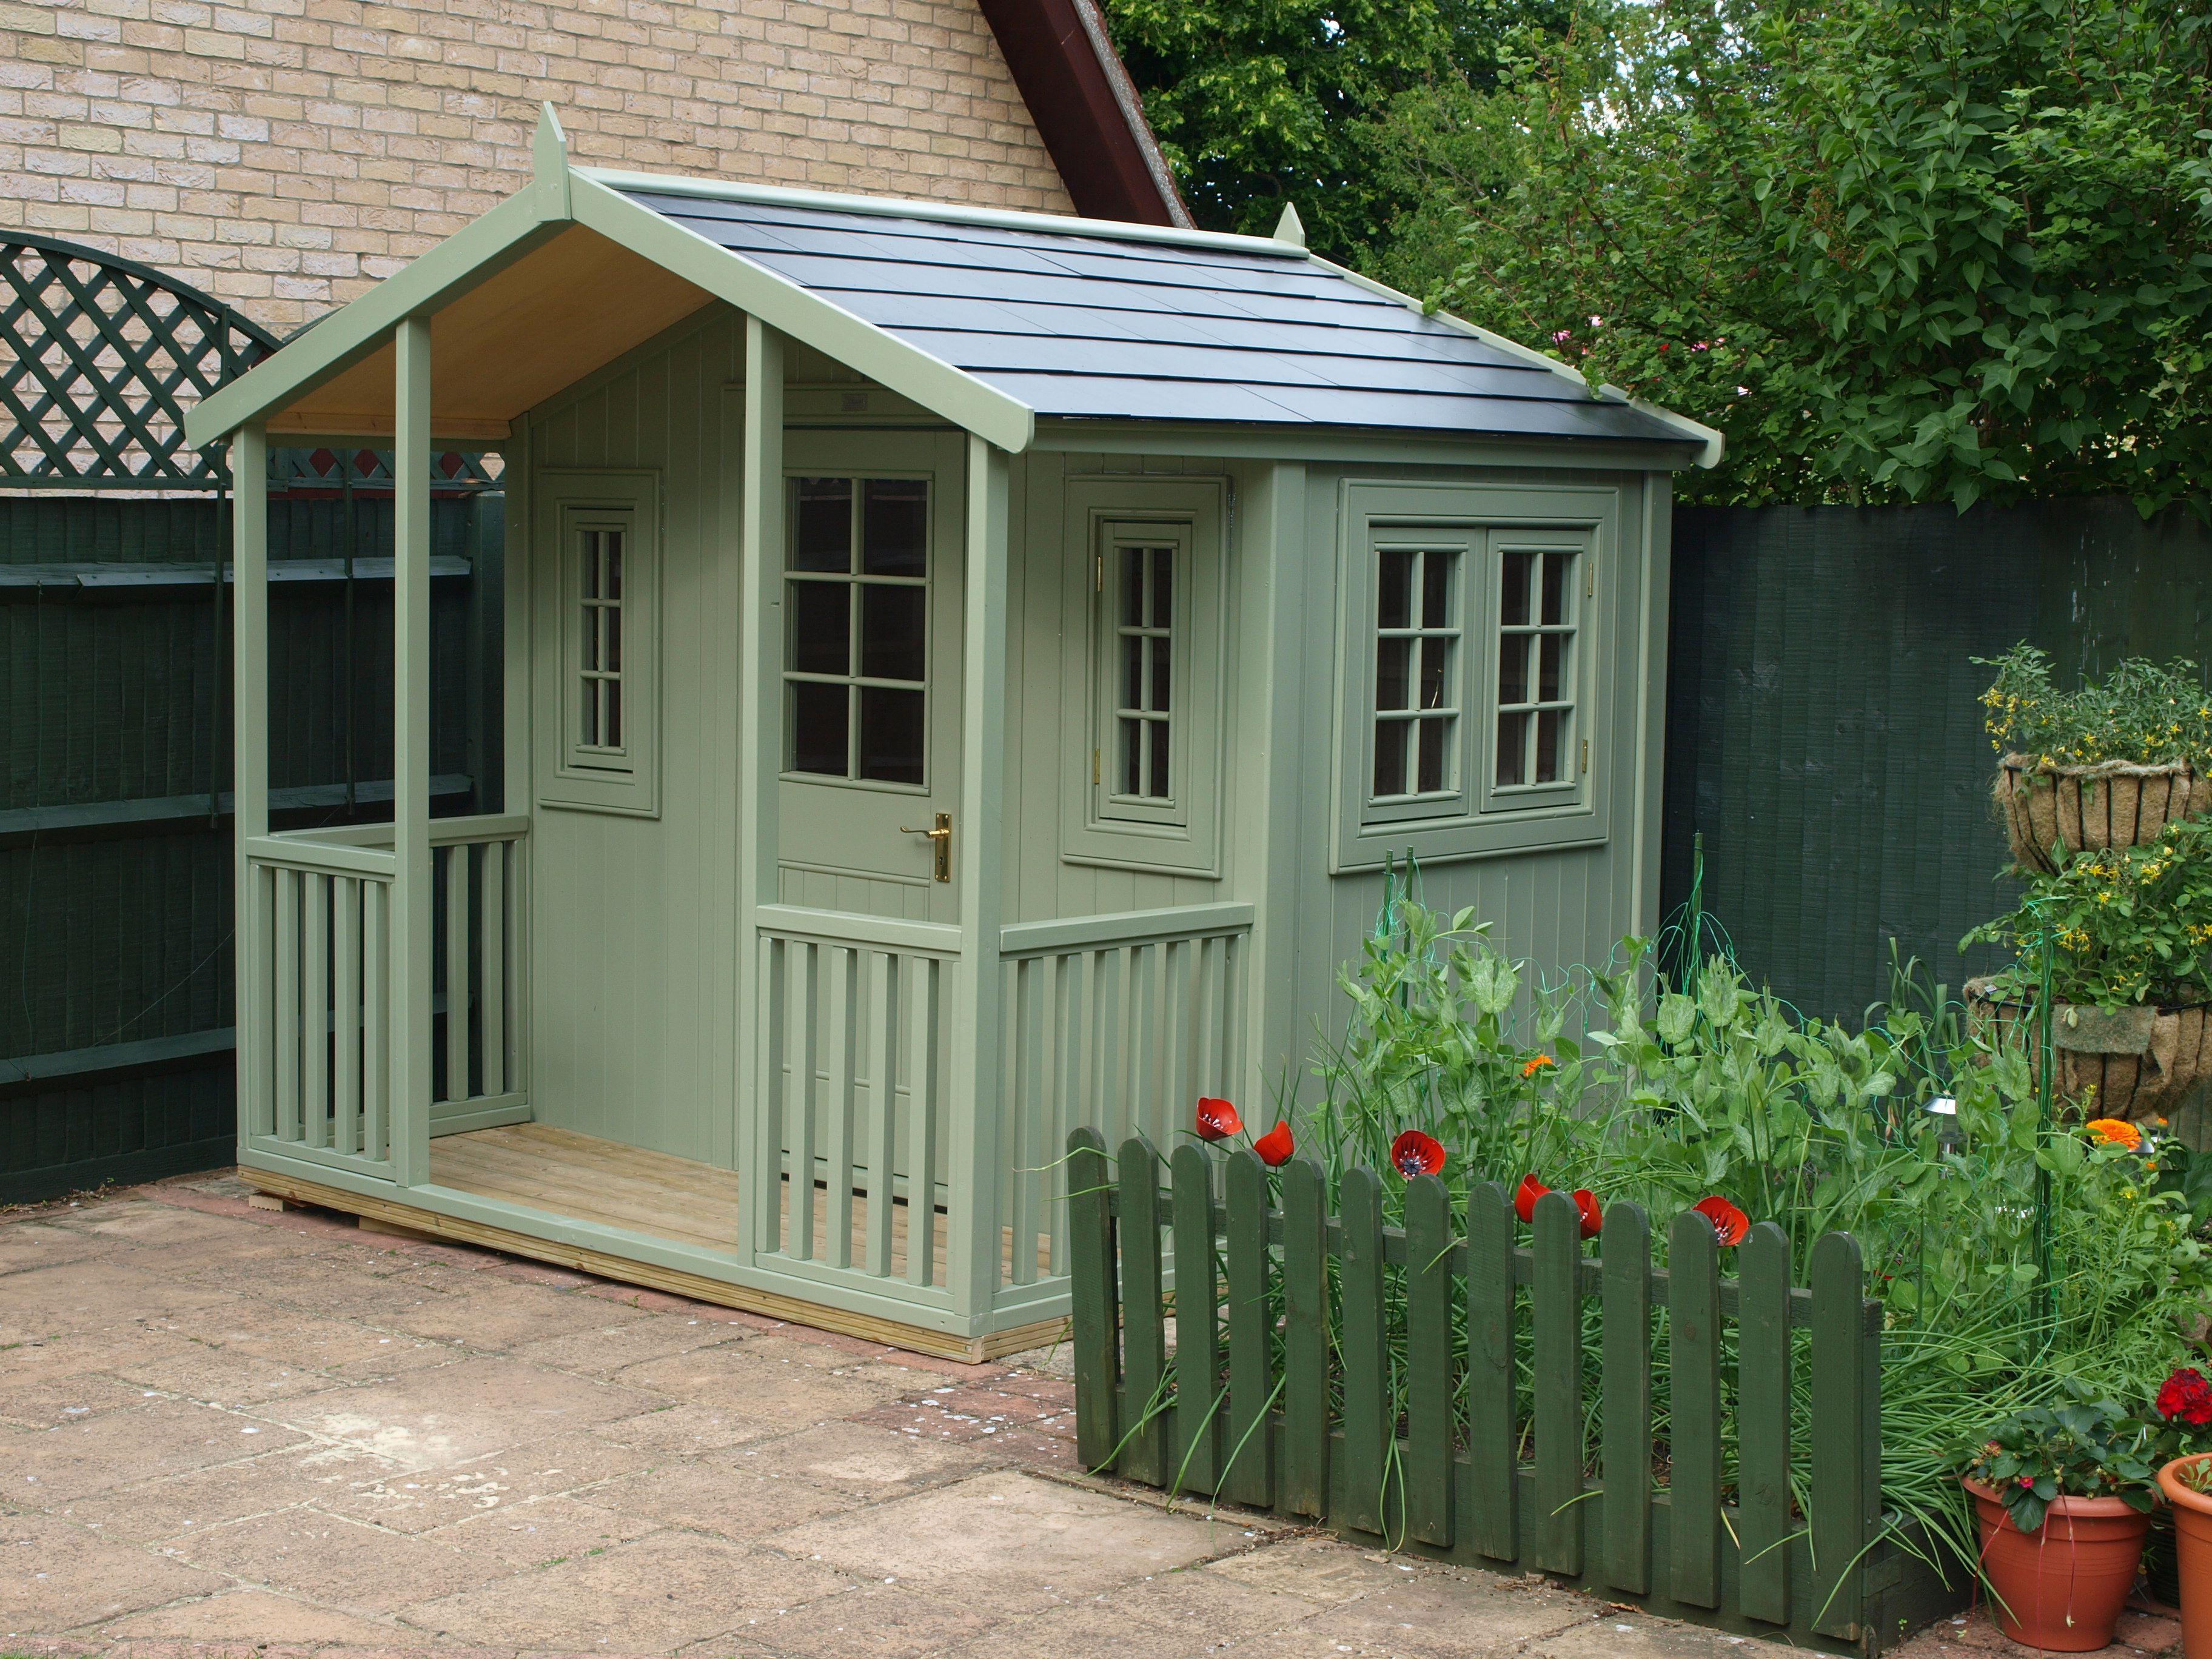 Superieur A Bespoke Potting Shed With Veranda